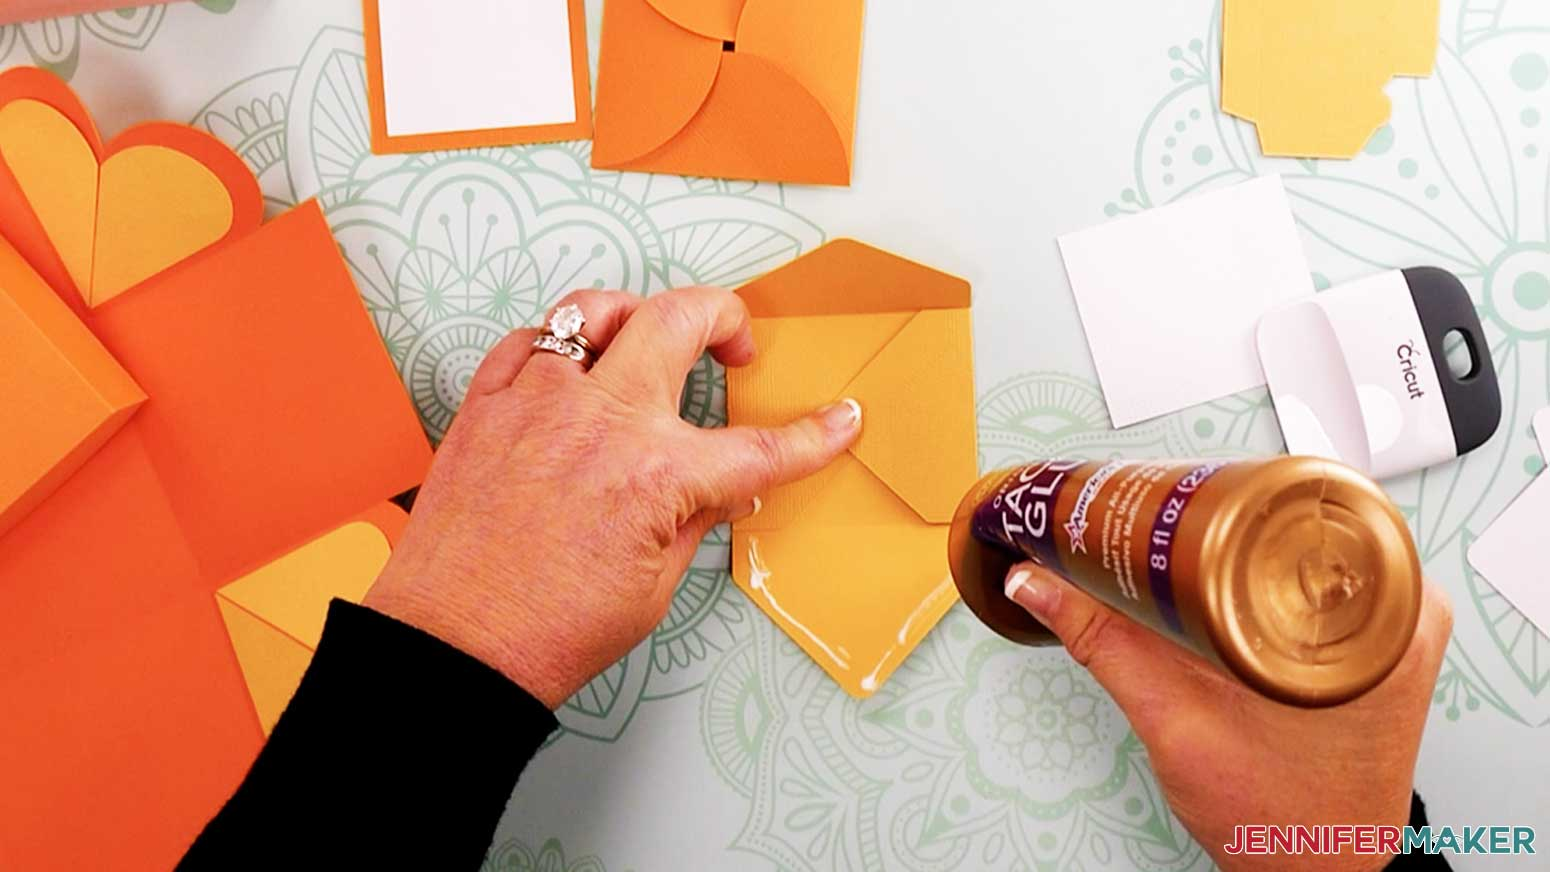 Add glue to the envelope flap for my heart explosion box